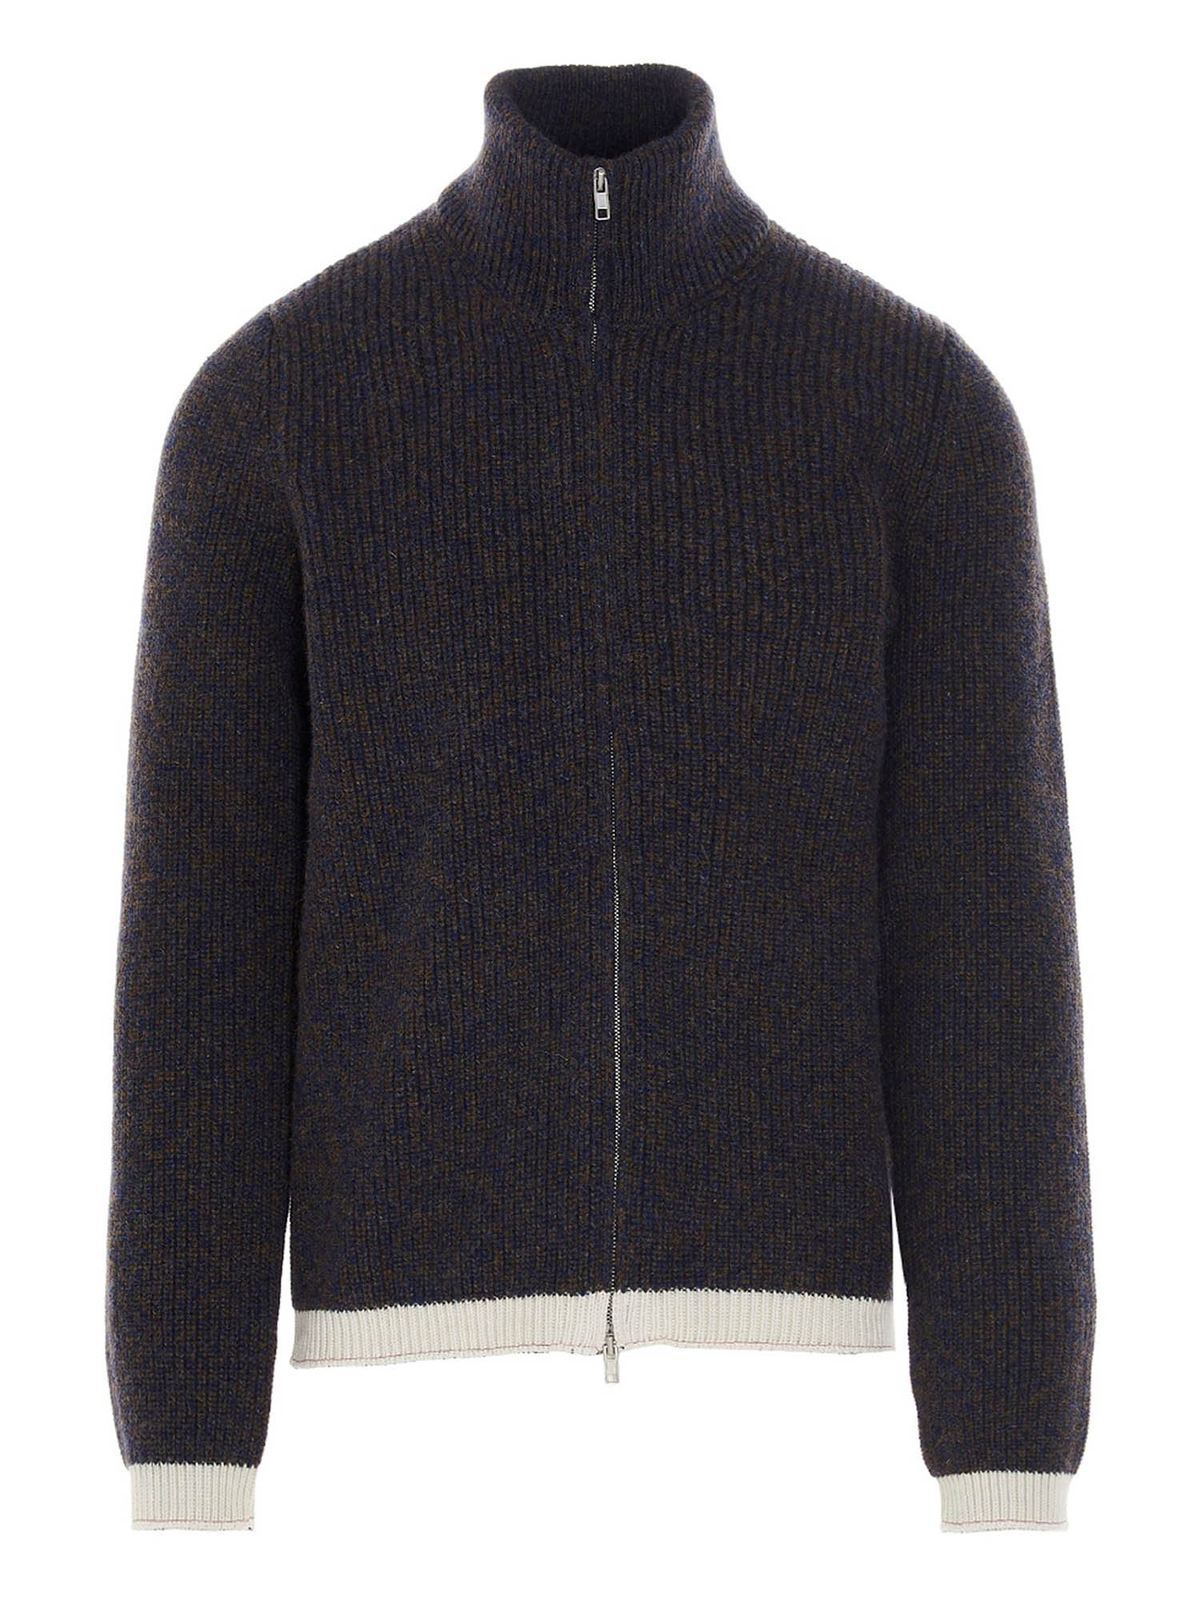 Maison Margiela Cardigans FULL ZIP CARDIGAN IN BLUE AND BROWN